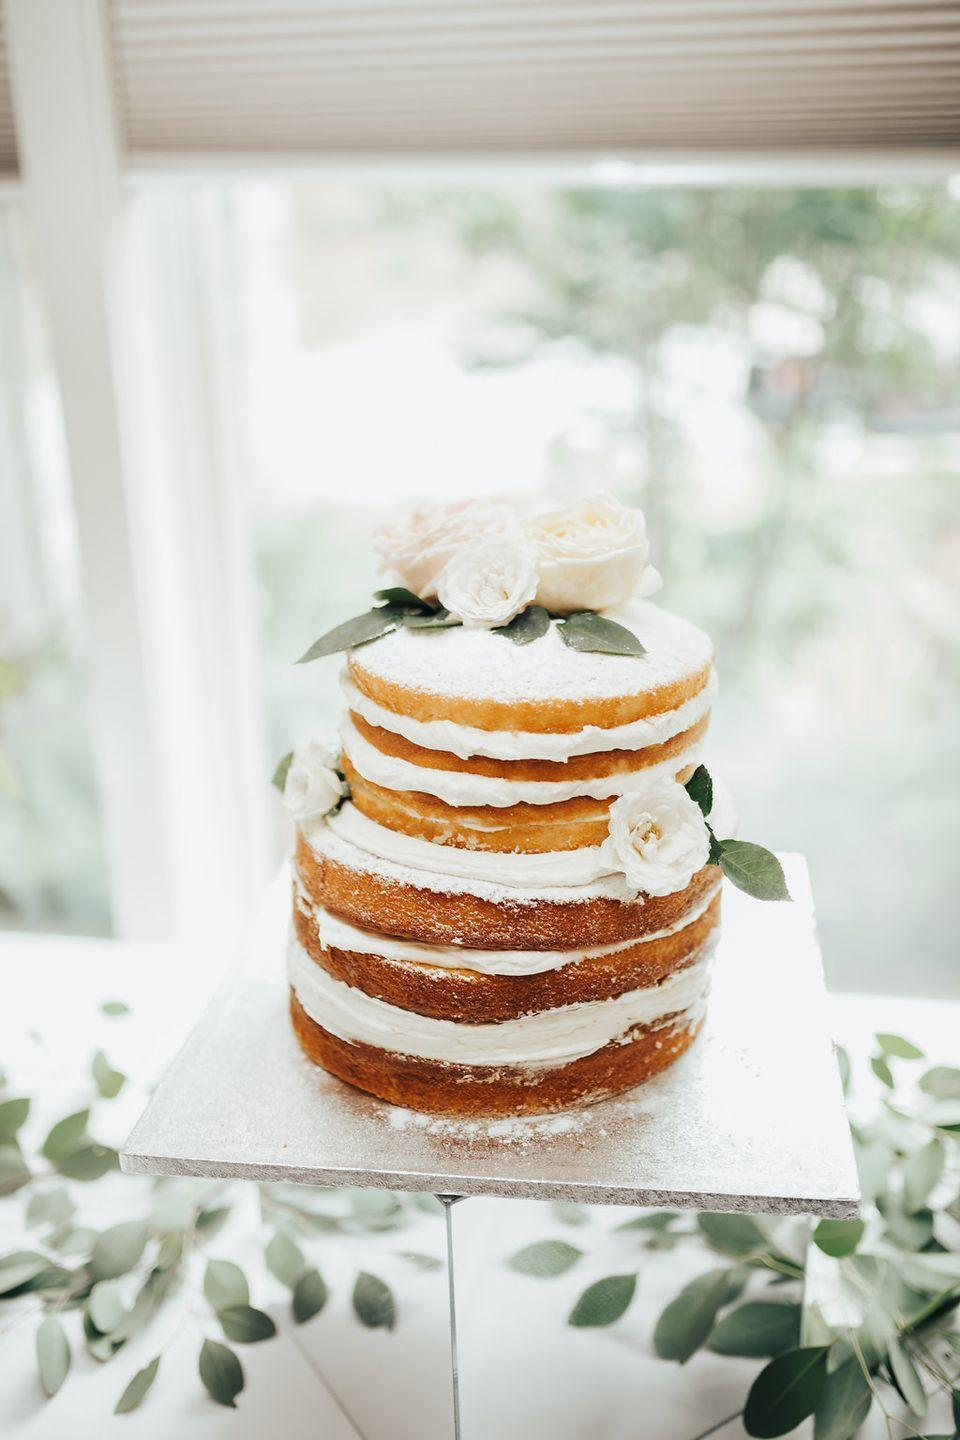 """<p>Naked cakes are huge right now—and you can swap out the frosting and <a href=""""https://www.fiftyflowers.com/"""" rel=""""nofollow noopener"""" target=""""_blank"""" data-ylk=""""slk:blooms"""" class=""""link rapid-noclick-resp"""">blooms</a> based on the season and your wedding colors.</p>"""